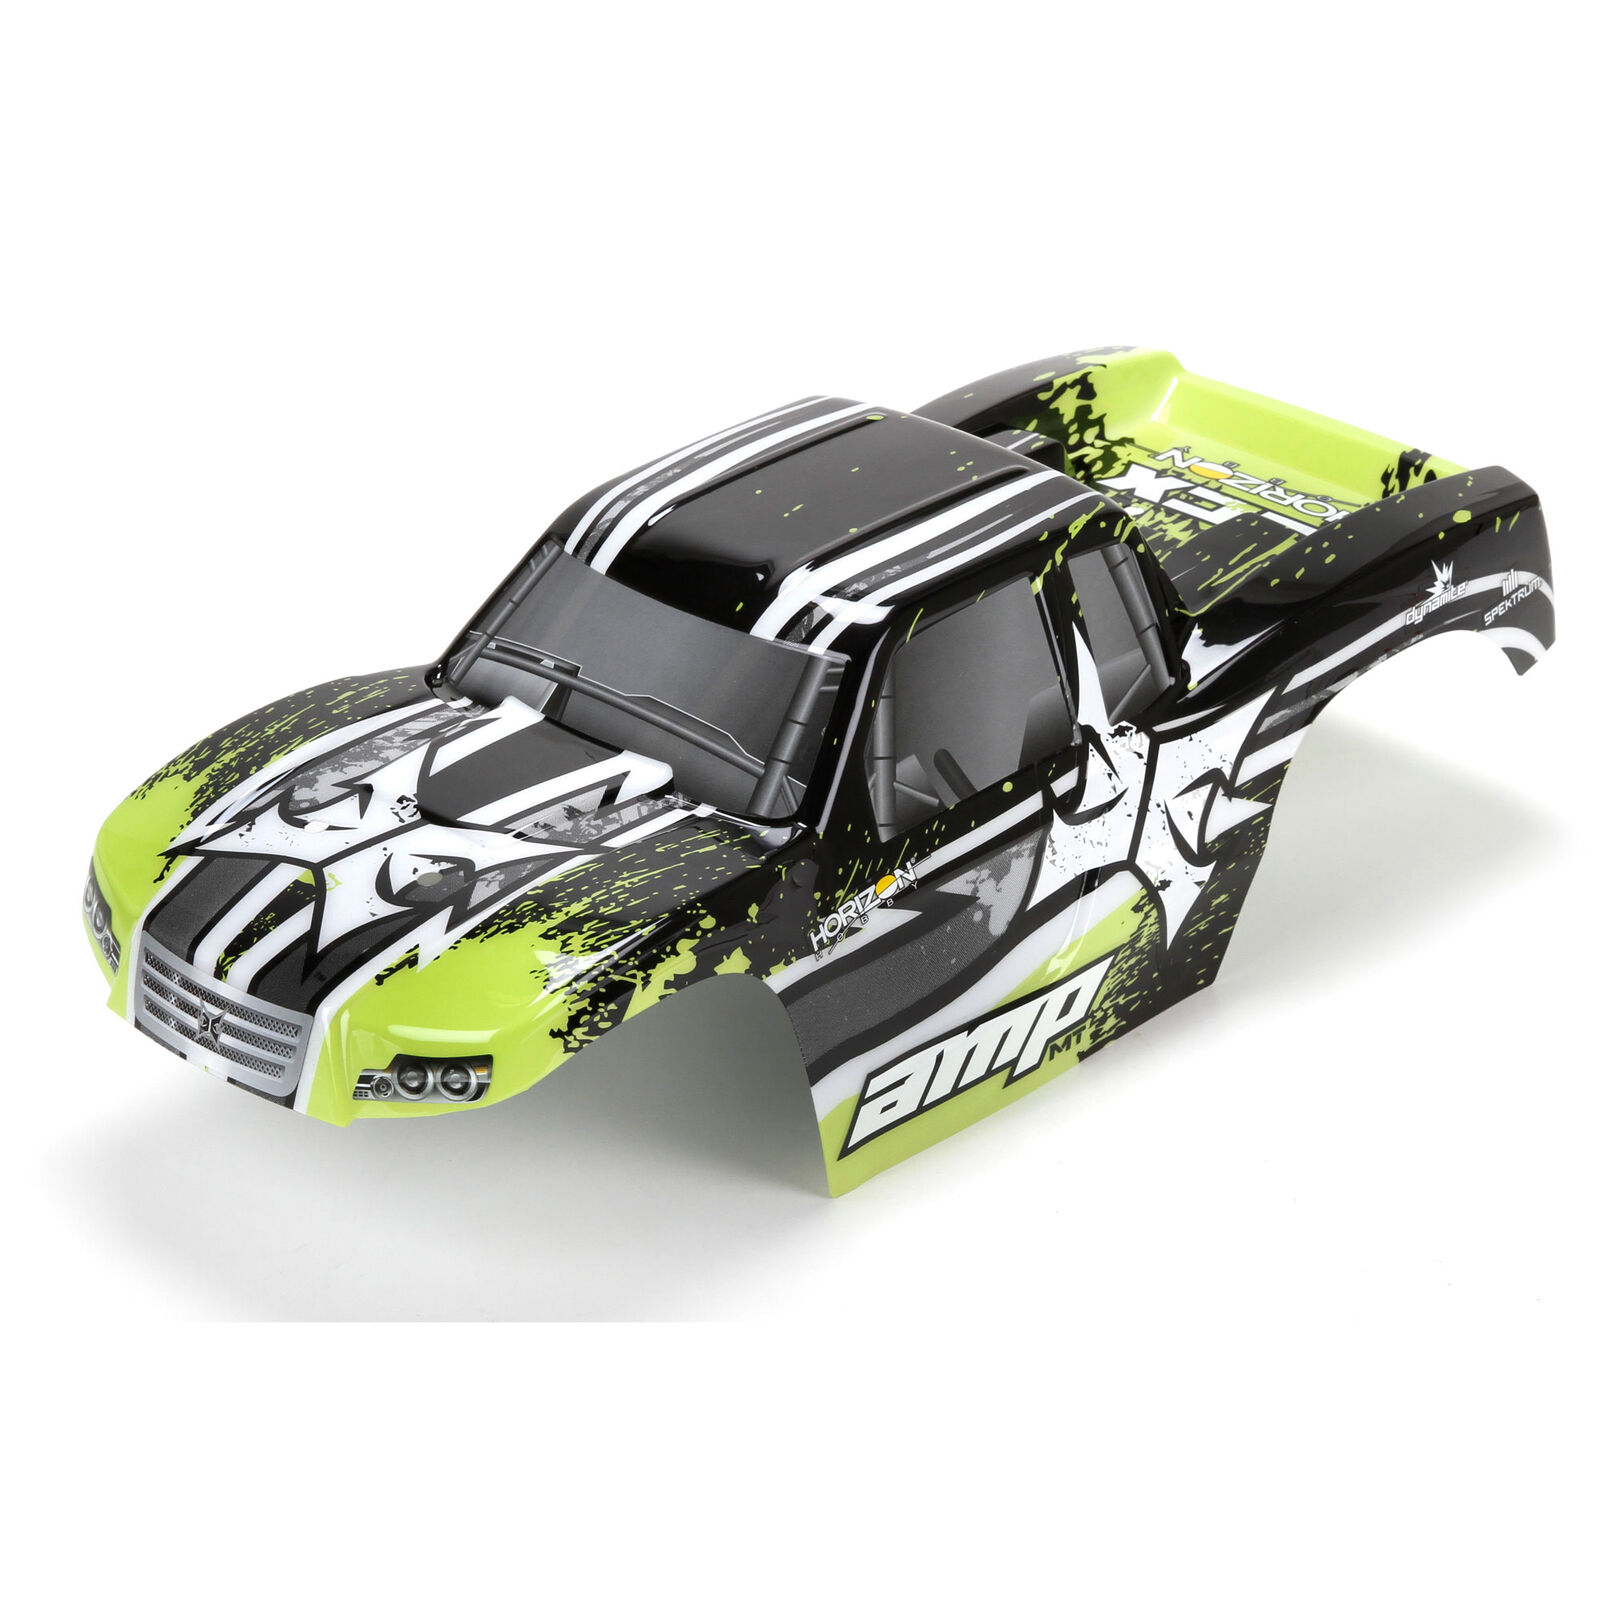 Body, Painted, Black/Green: 1/10 AMP MT